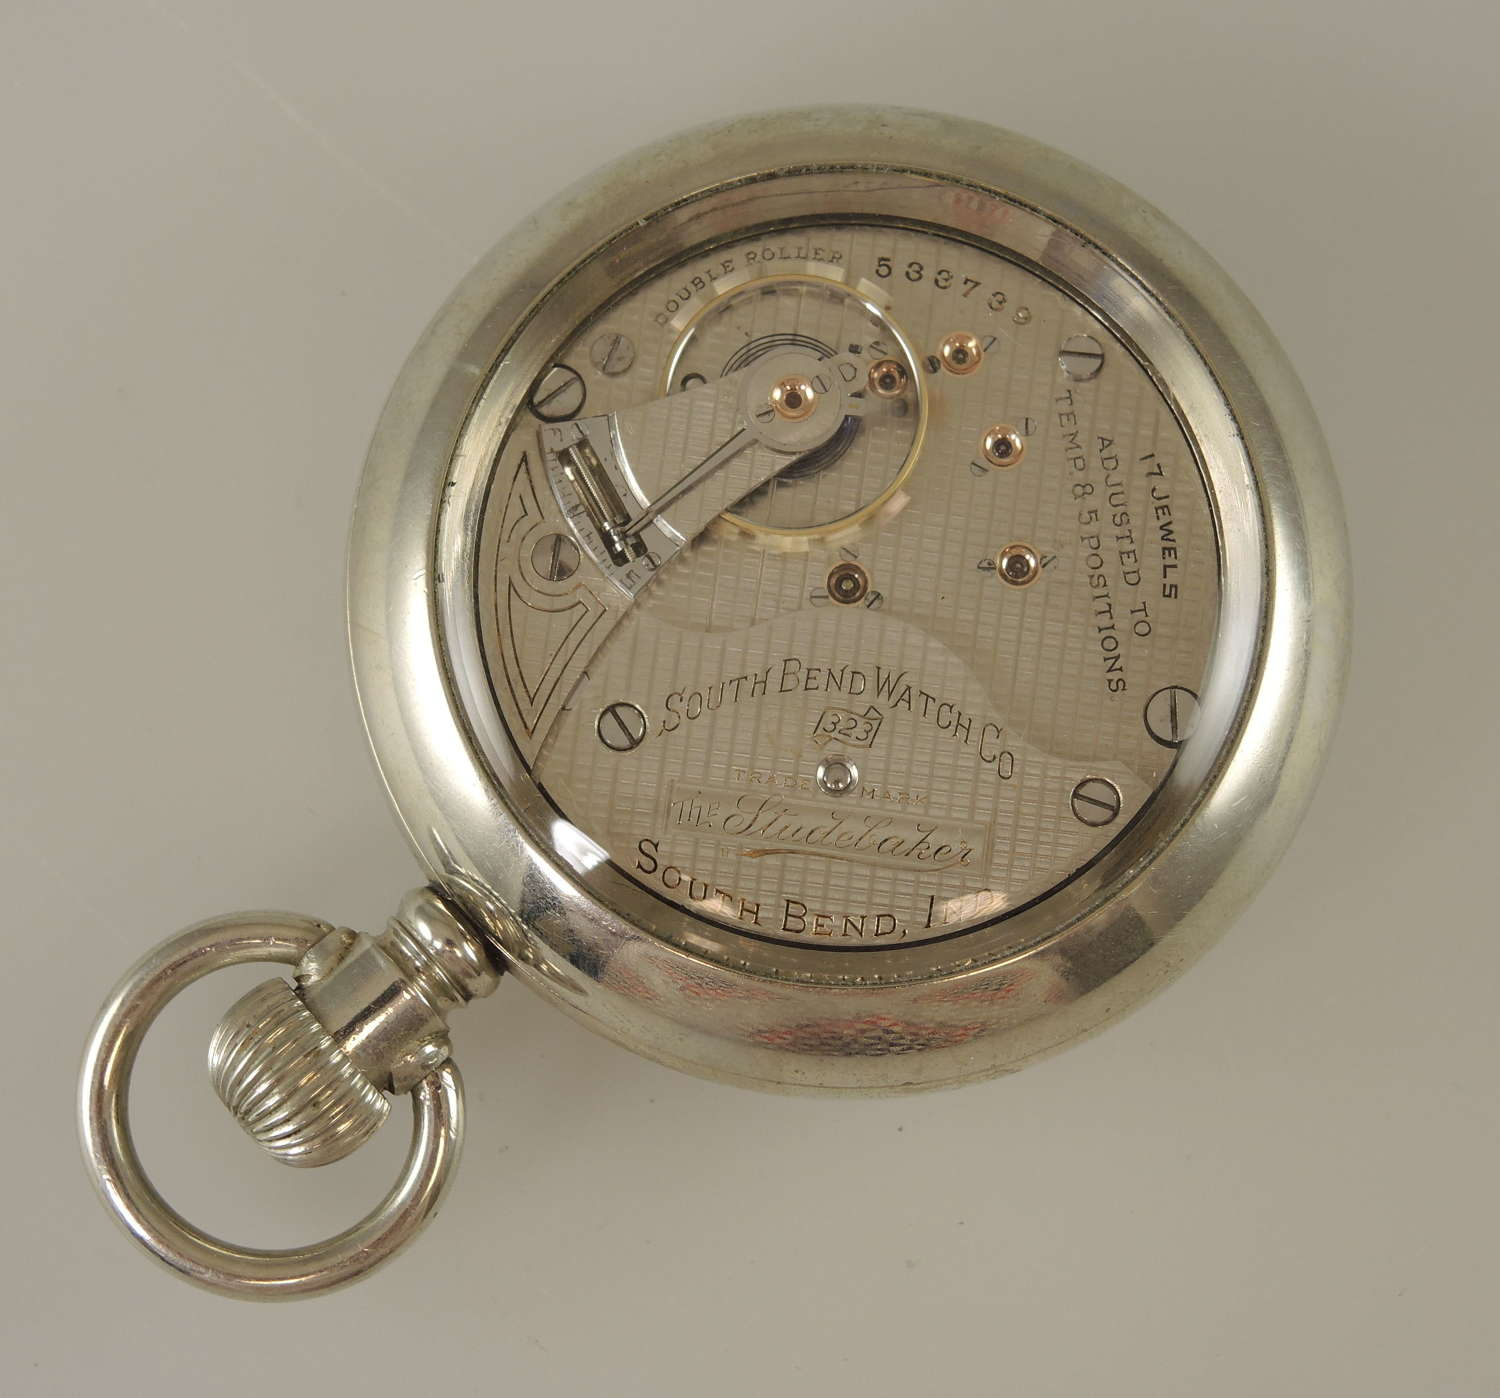 18s 17J South Bend The Studebaker 323 display cased pocket watch c1908